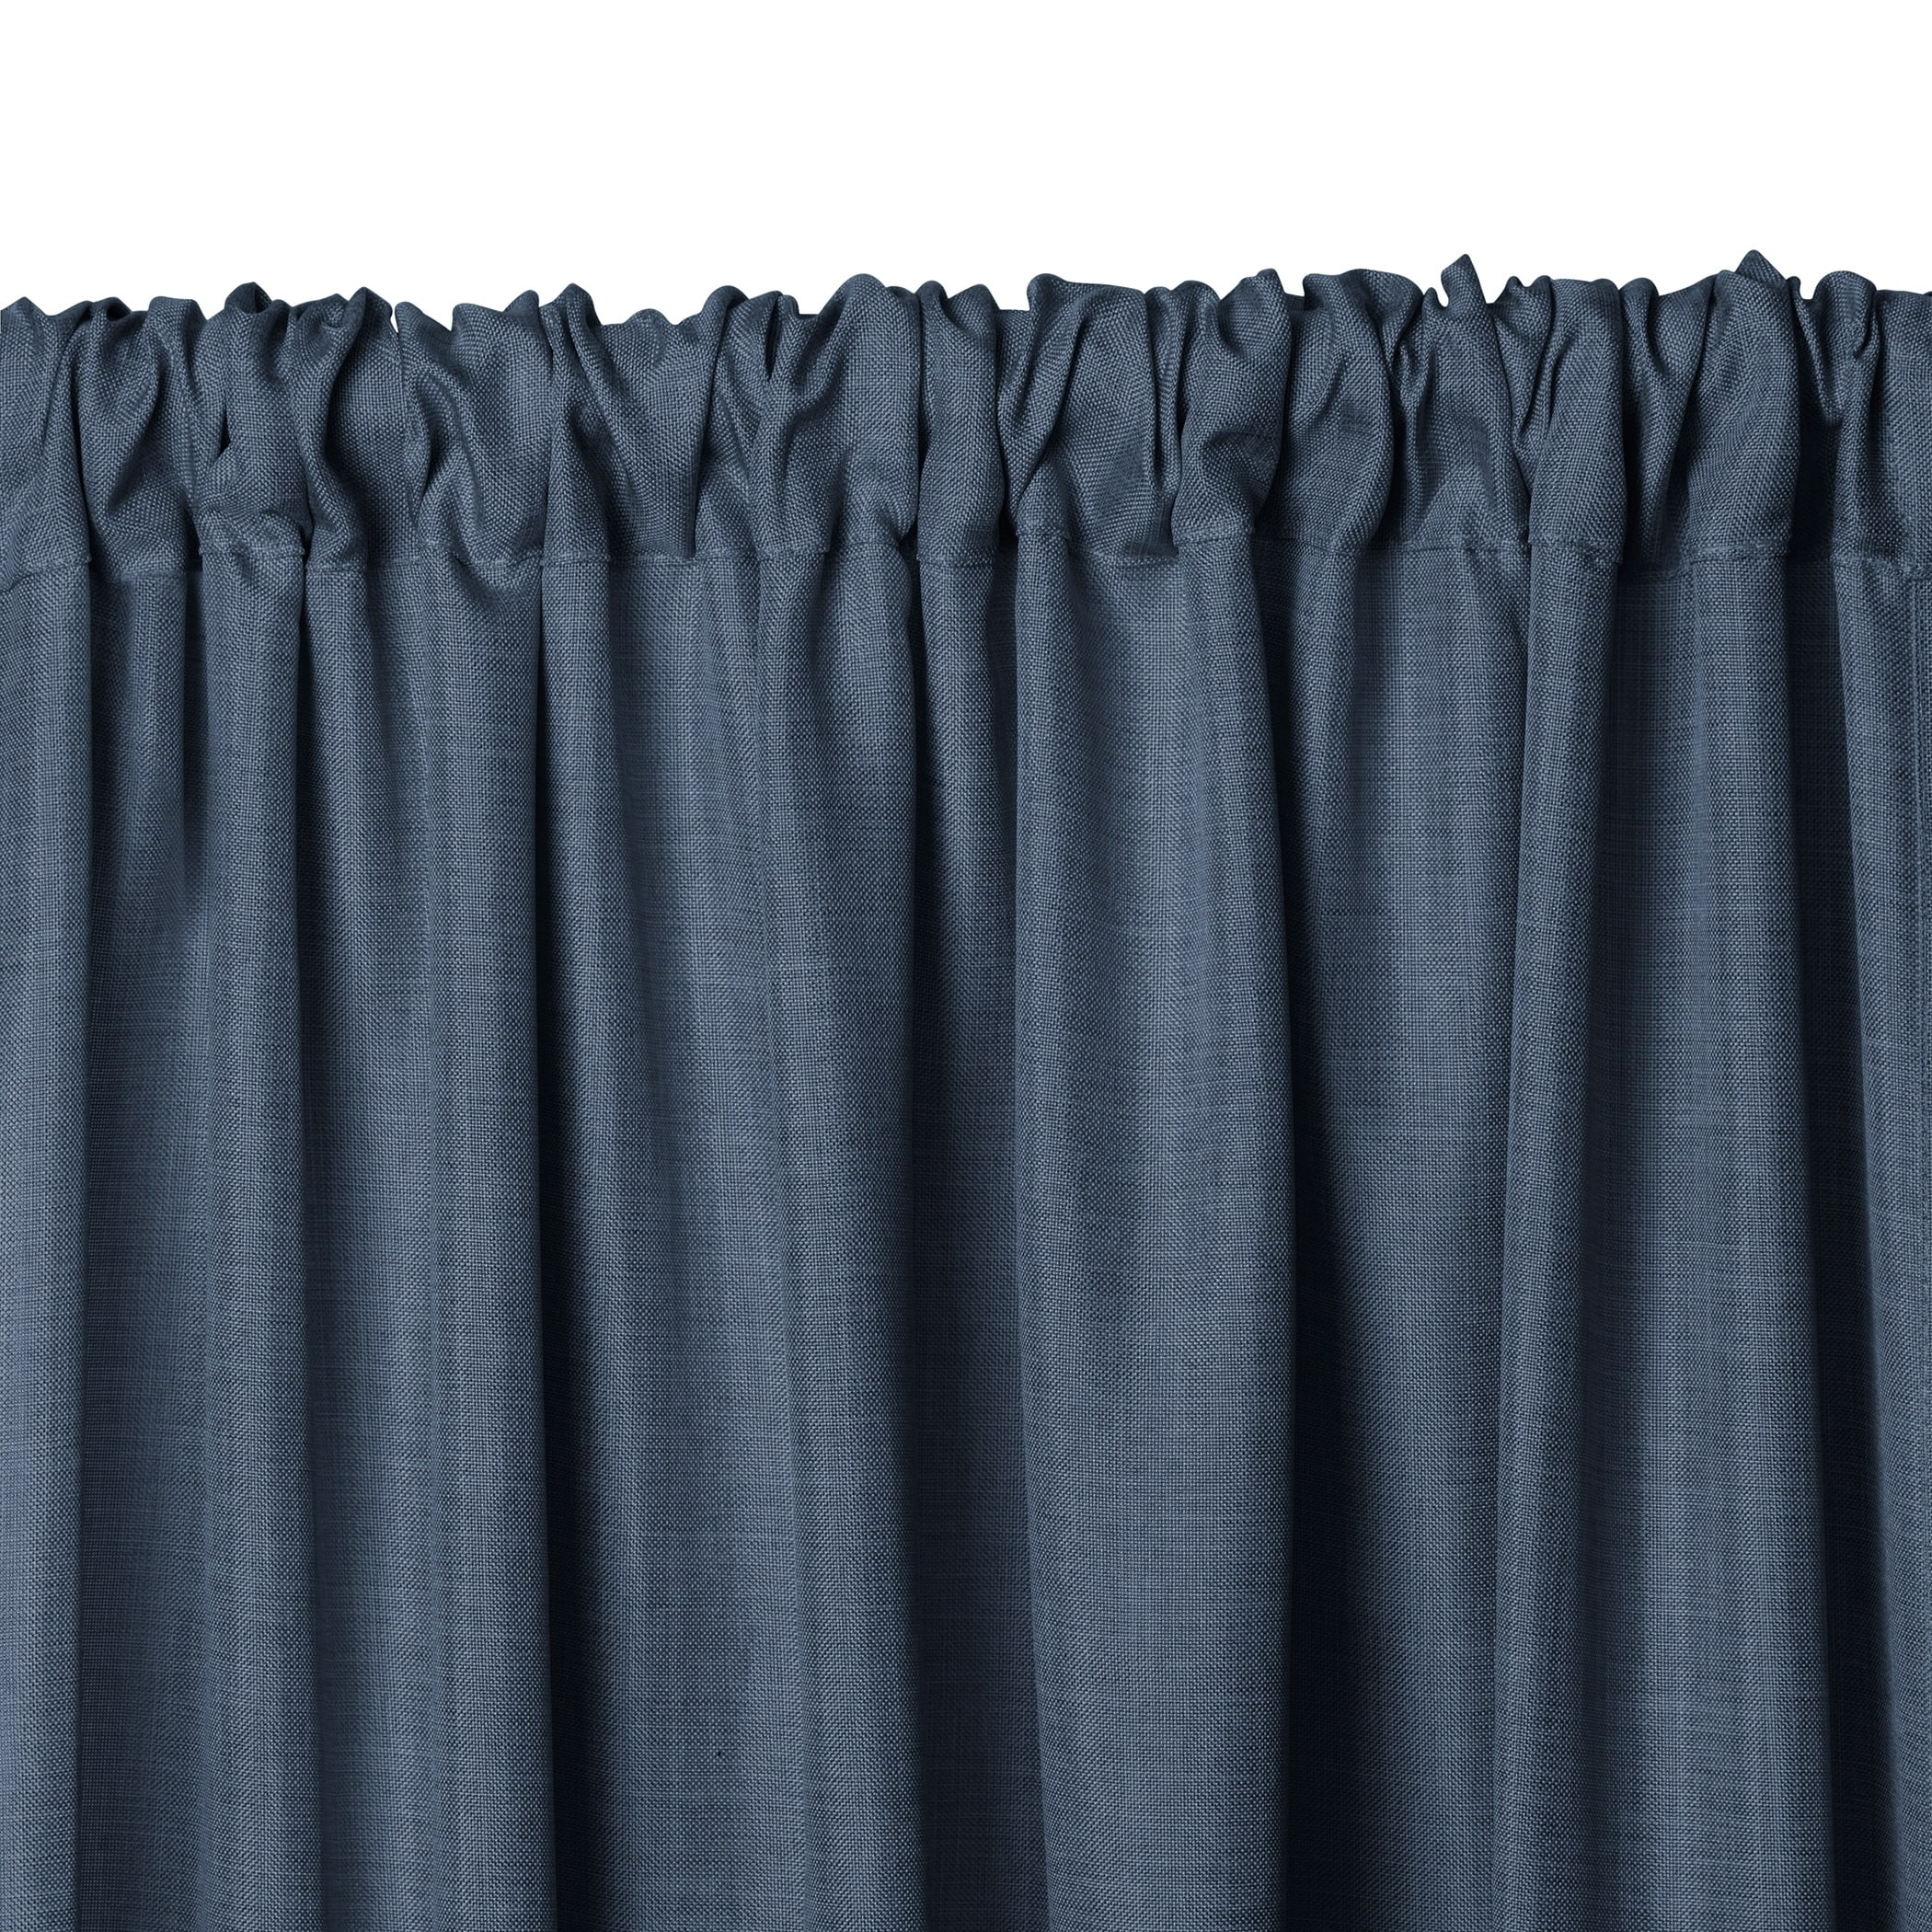 ideas denim new drapes with